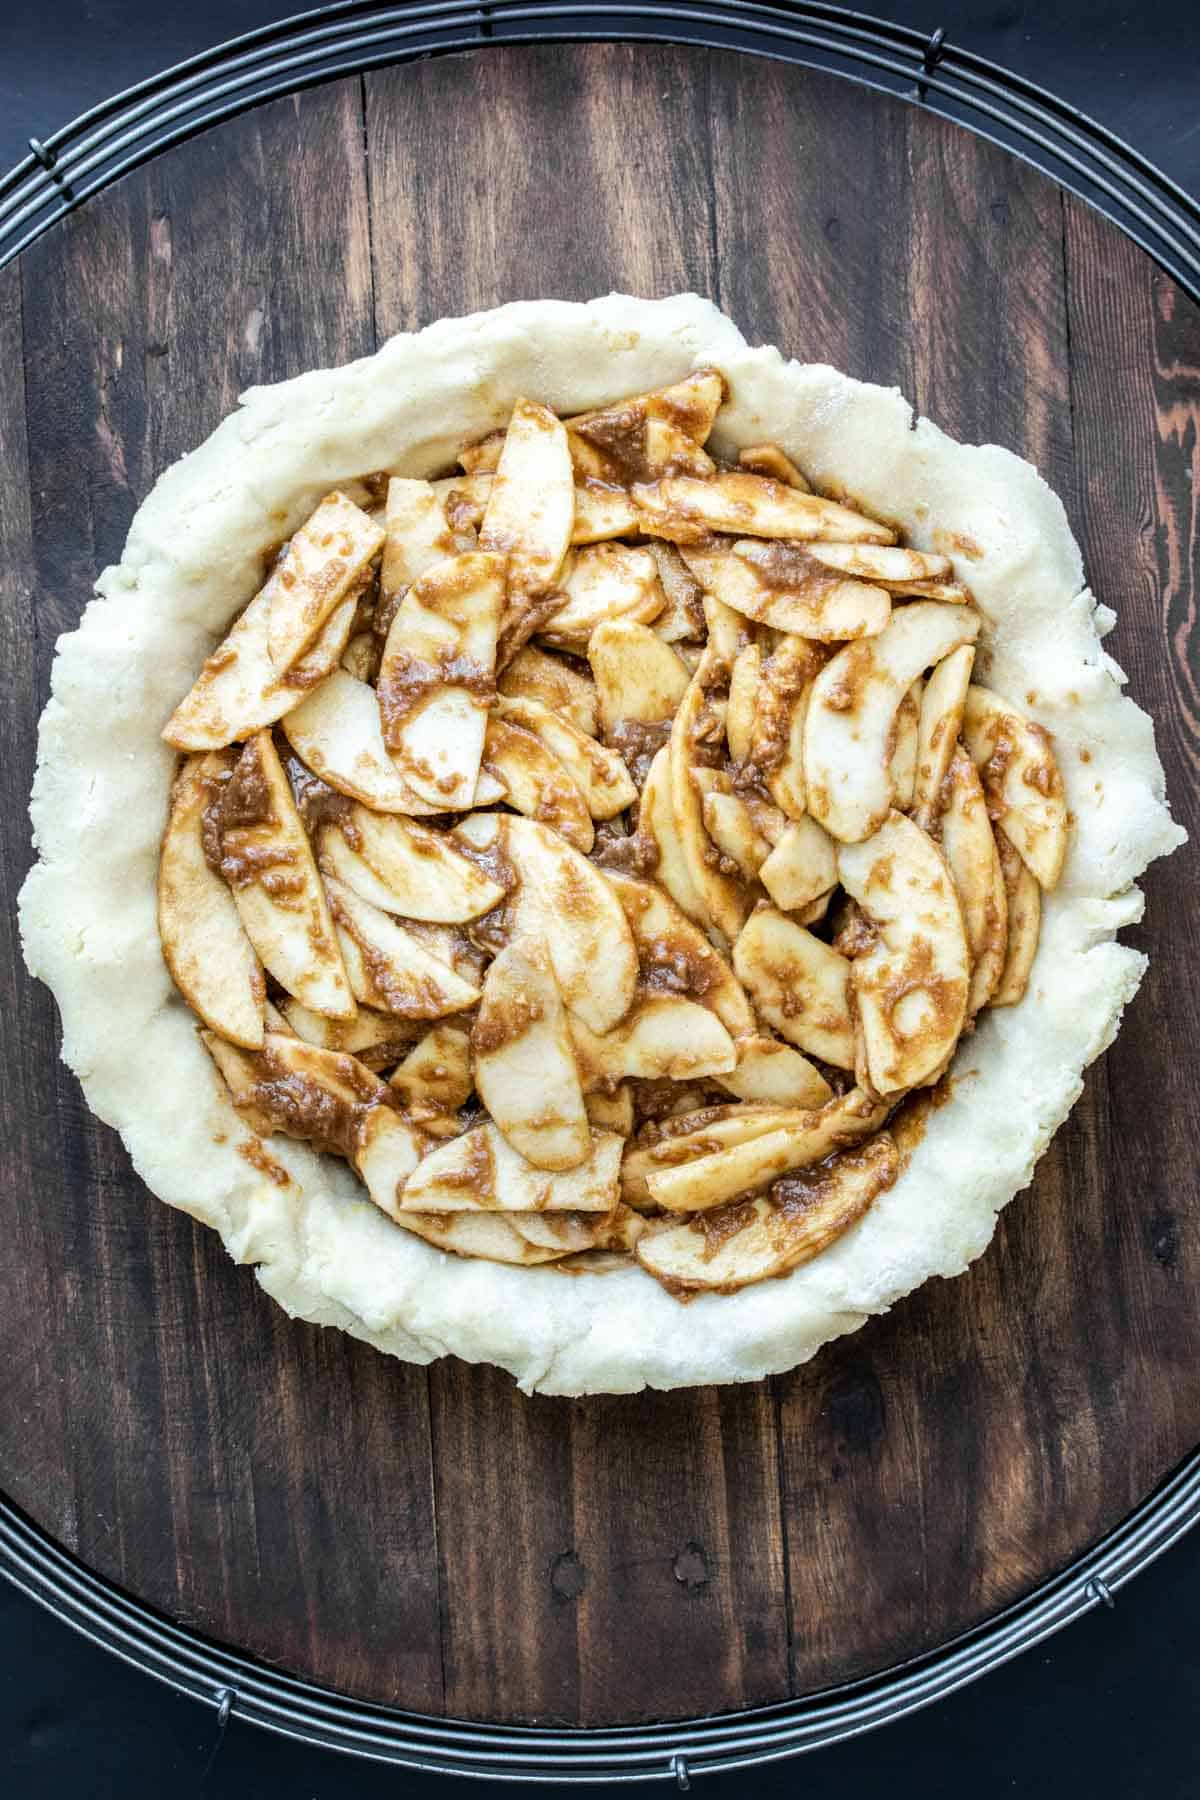 Raw pie crust filled with apple pie filling